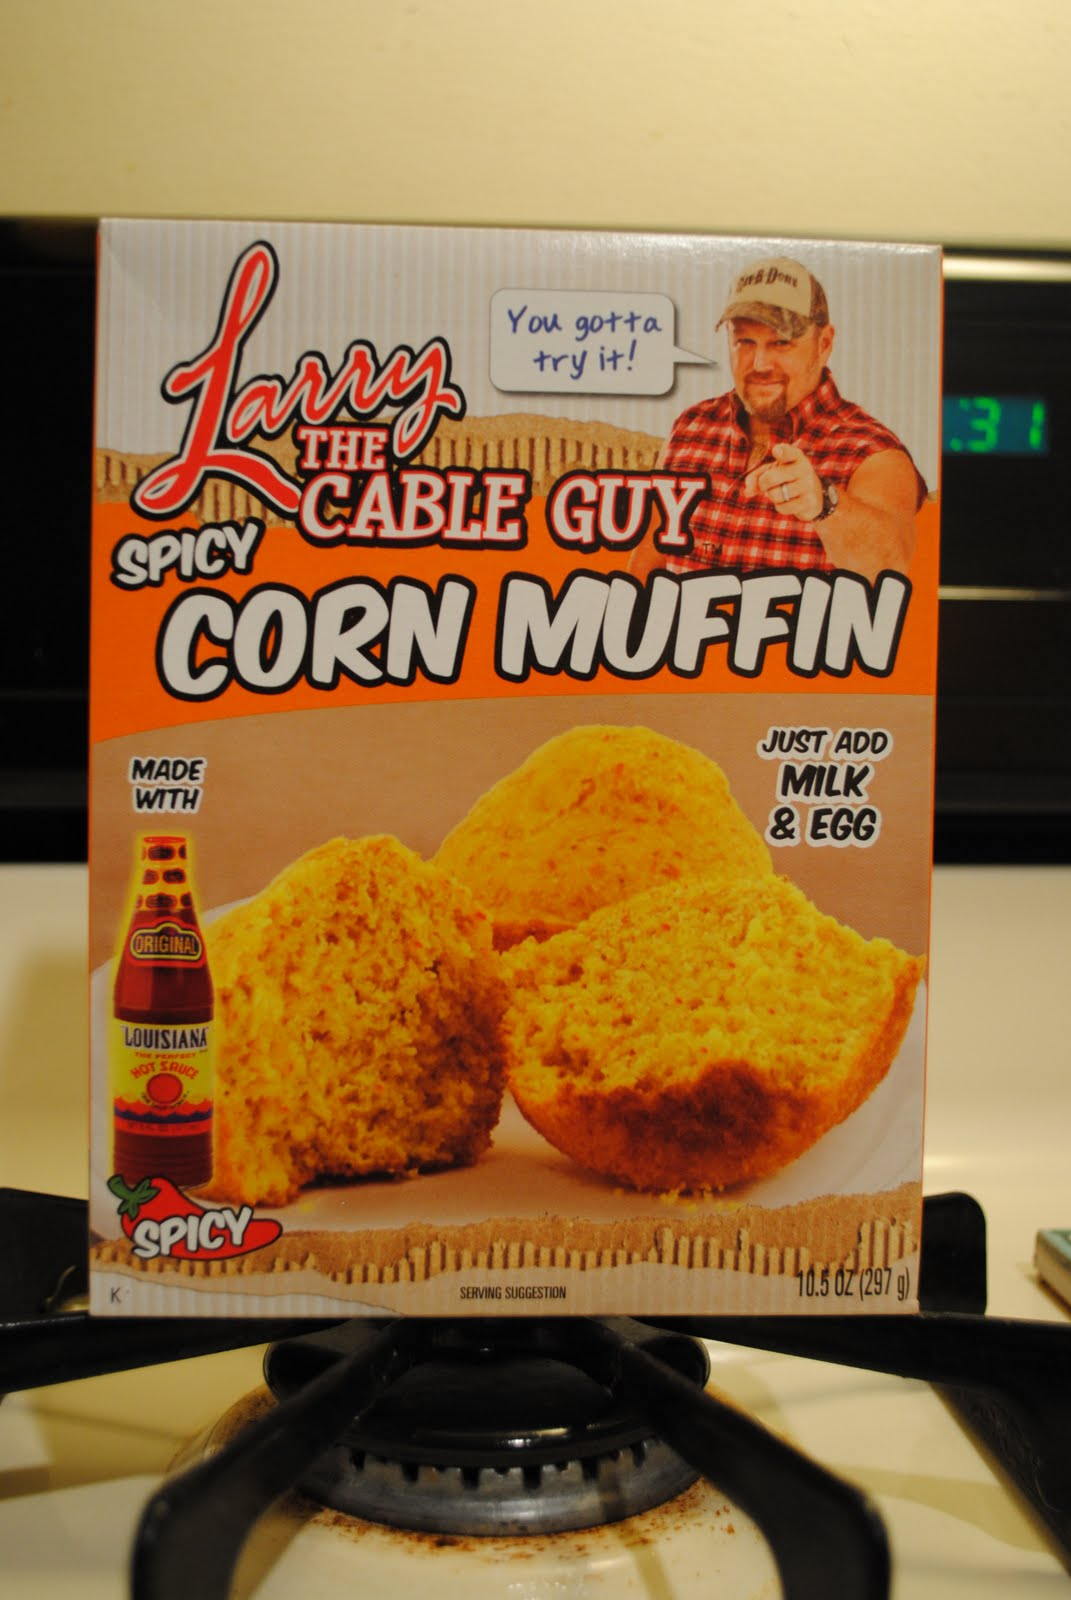 The cable guy nasty snack